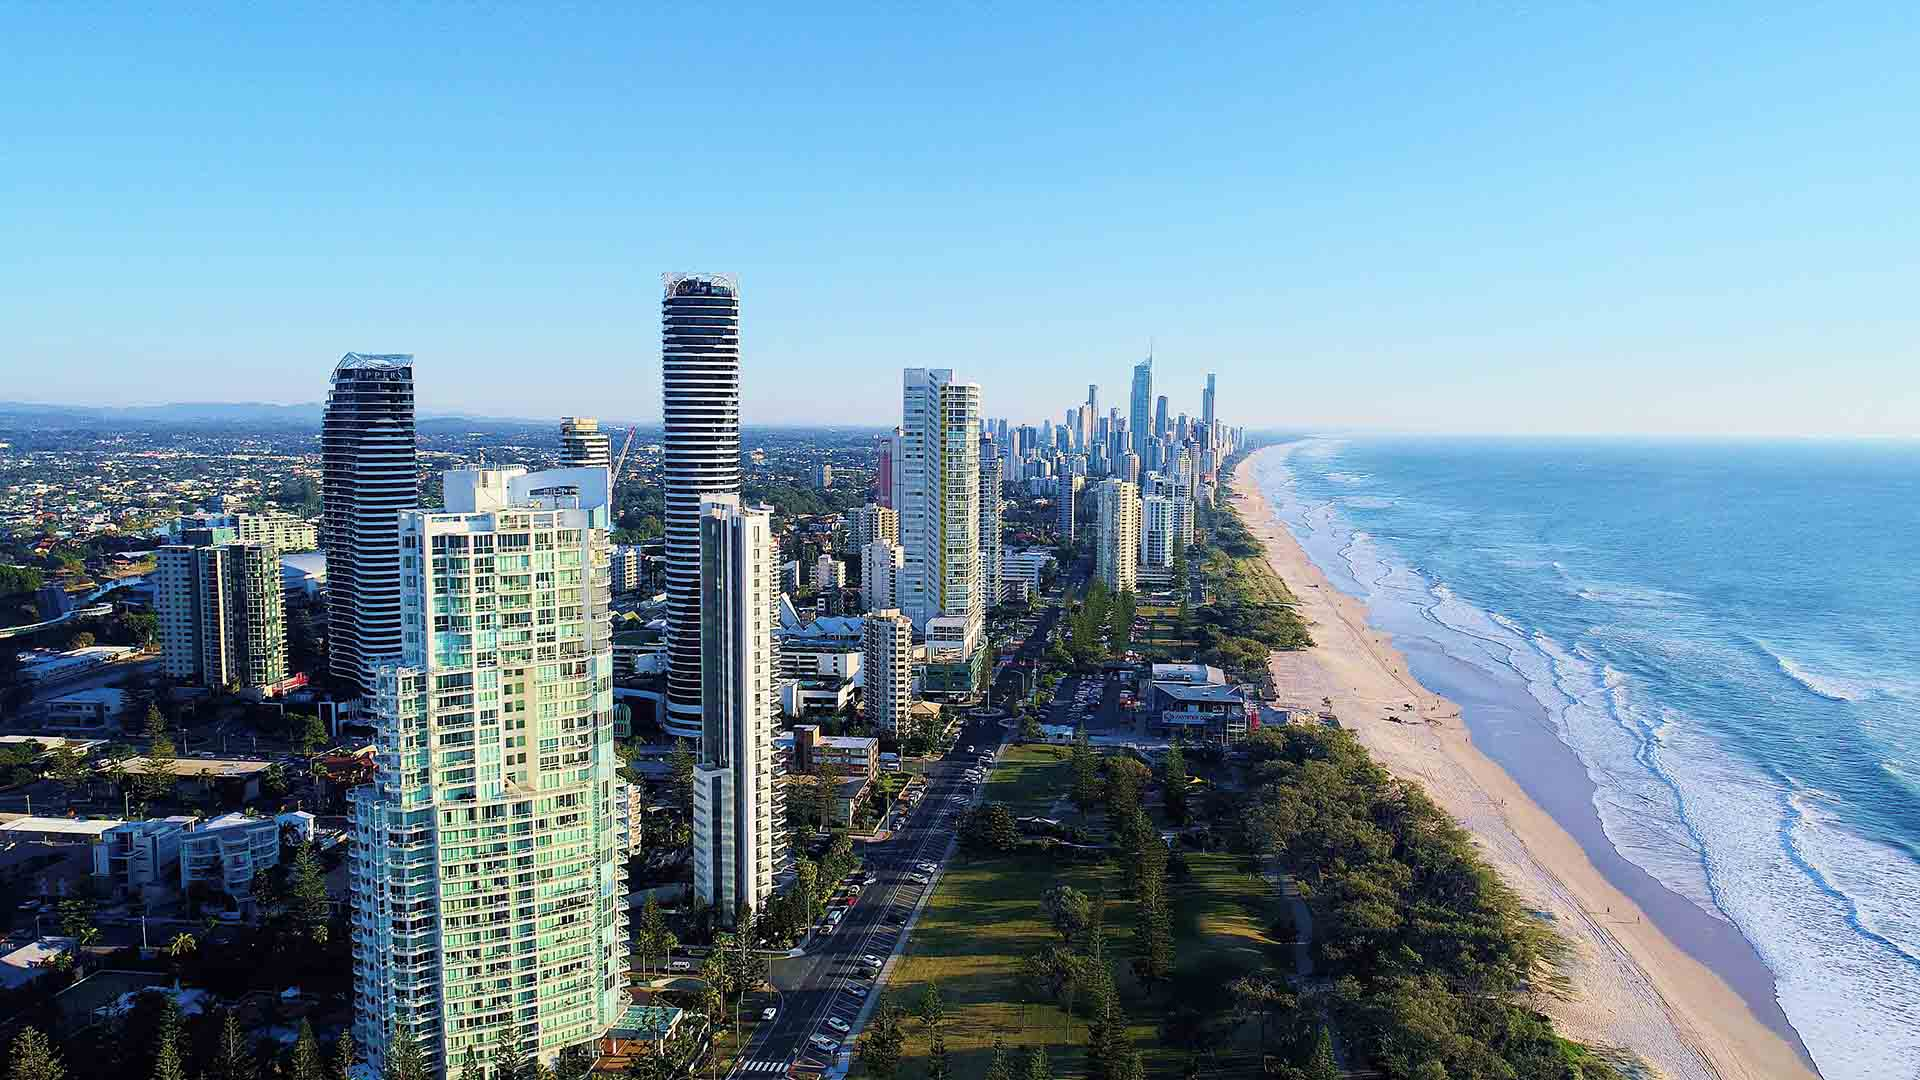 The Queensland Government Is Giving Out 30,000 Vouchers to Use on Gold Coast Holidays